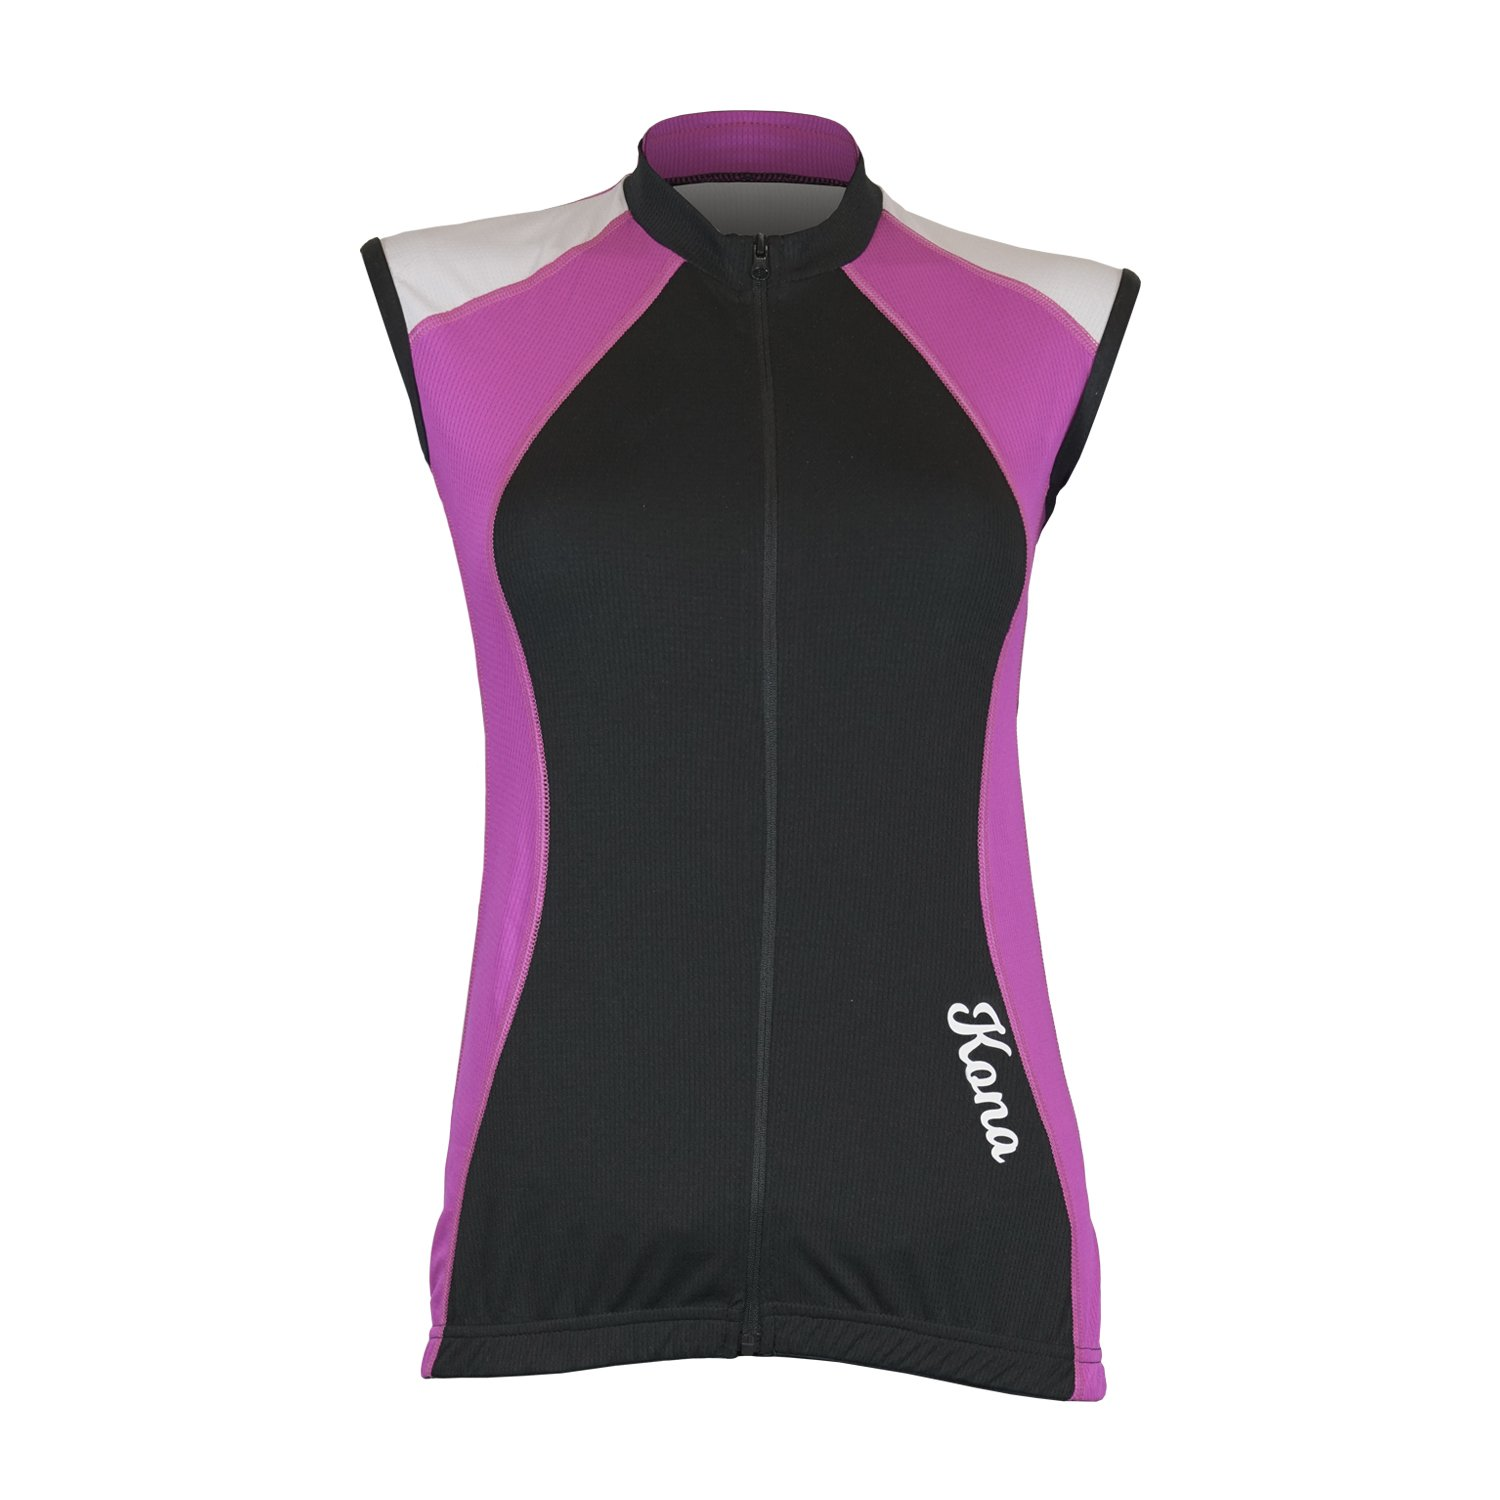 Women's KONA Triathlon Vest Jersey and Shorts - Sleeveless Tri Singlet, 2 Rear Pockets for Storage